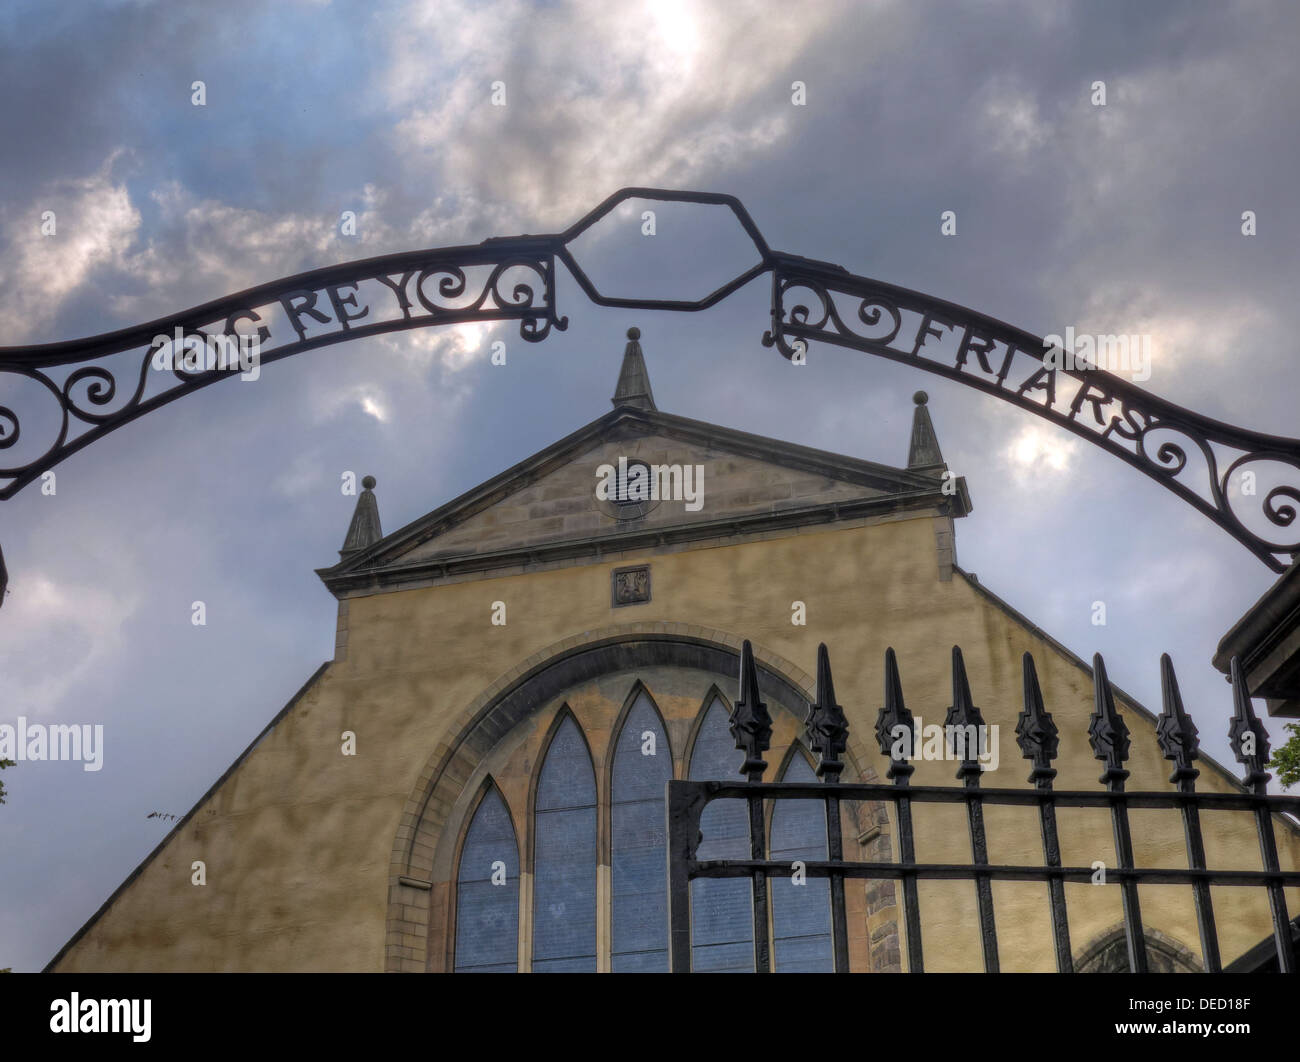 Scottish,classic,public,house,CAMRA,Grayfriars,Gray,Friar,Friars,Grey,bar,bars,in,Church,yard,churchyard,gravestone,graveyard,grave,graves,graveyards,gravestones,sign,statue,Skye,Terrier,old,town,John,Gray,kirk,yard,kirkyard,gate,famous,gate,gates,kirkgates,kirk,kirkyard,sky,dramatic,HDR,entry,gotonysmith,oldtown,JohnGray,Lady,Burdett-Coutts,Burdett,Coutts,Jan,Bondeson,faithful,dog,dogs,Devotion,Scotsman,scotsmen,tourism,tourist,attraction,Entrance,haunted,ghost,tour,history,victorian,oldtown,Buy Pictures of,Buy Images Of